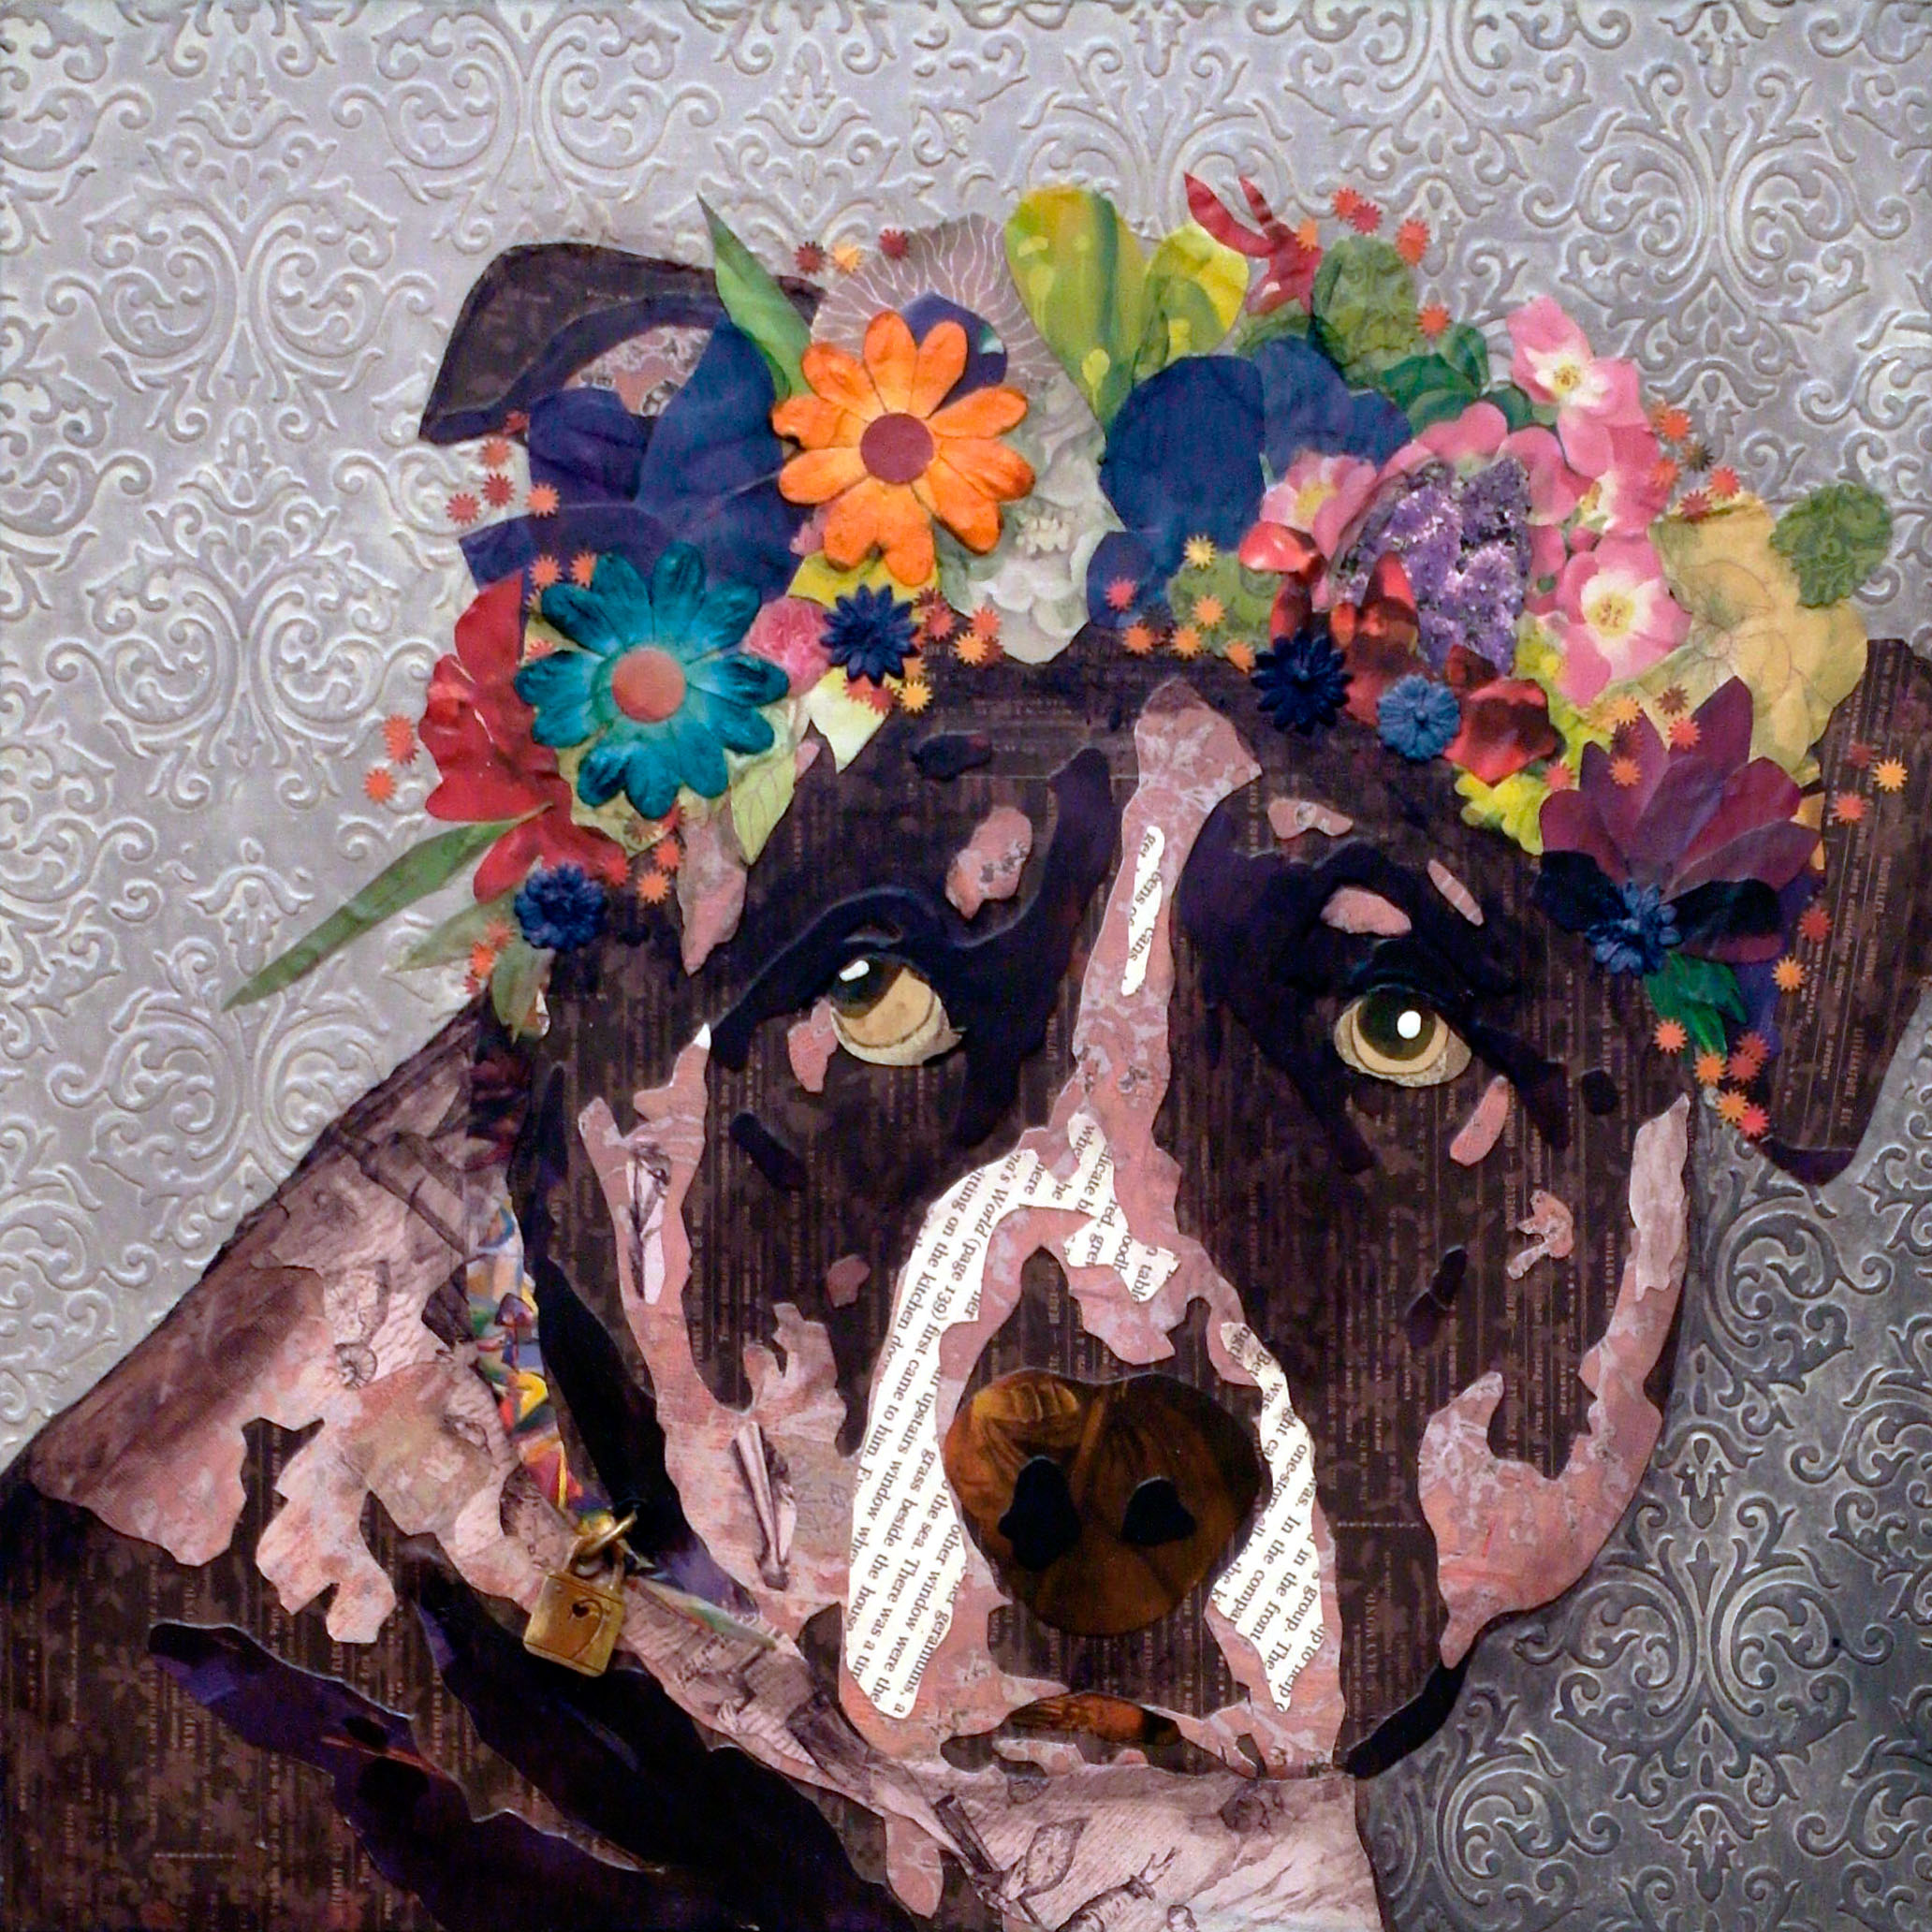 Dog with Flower Crown #1